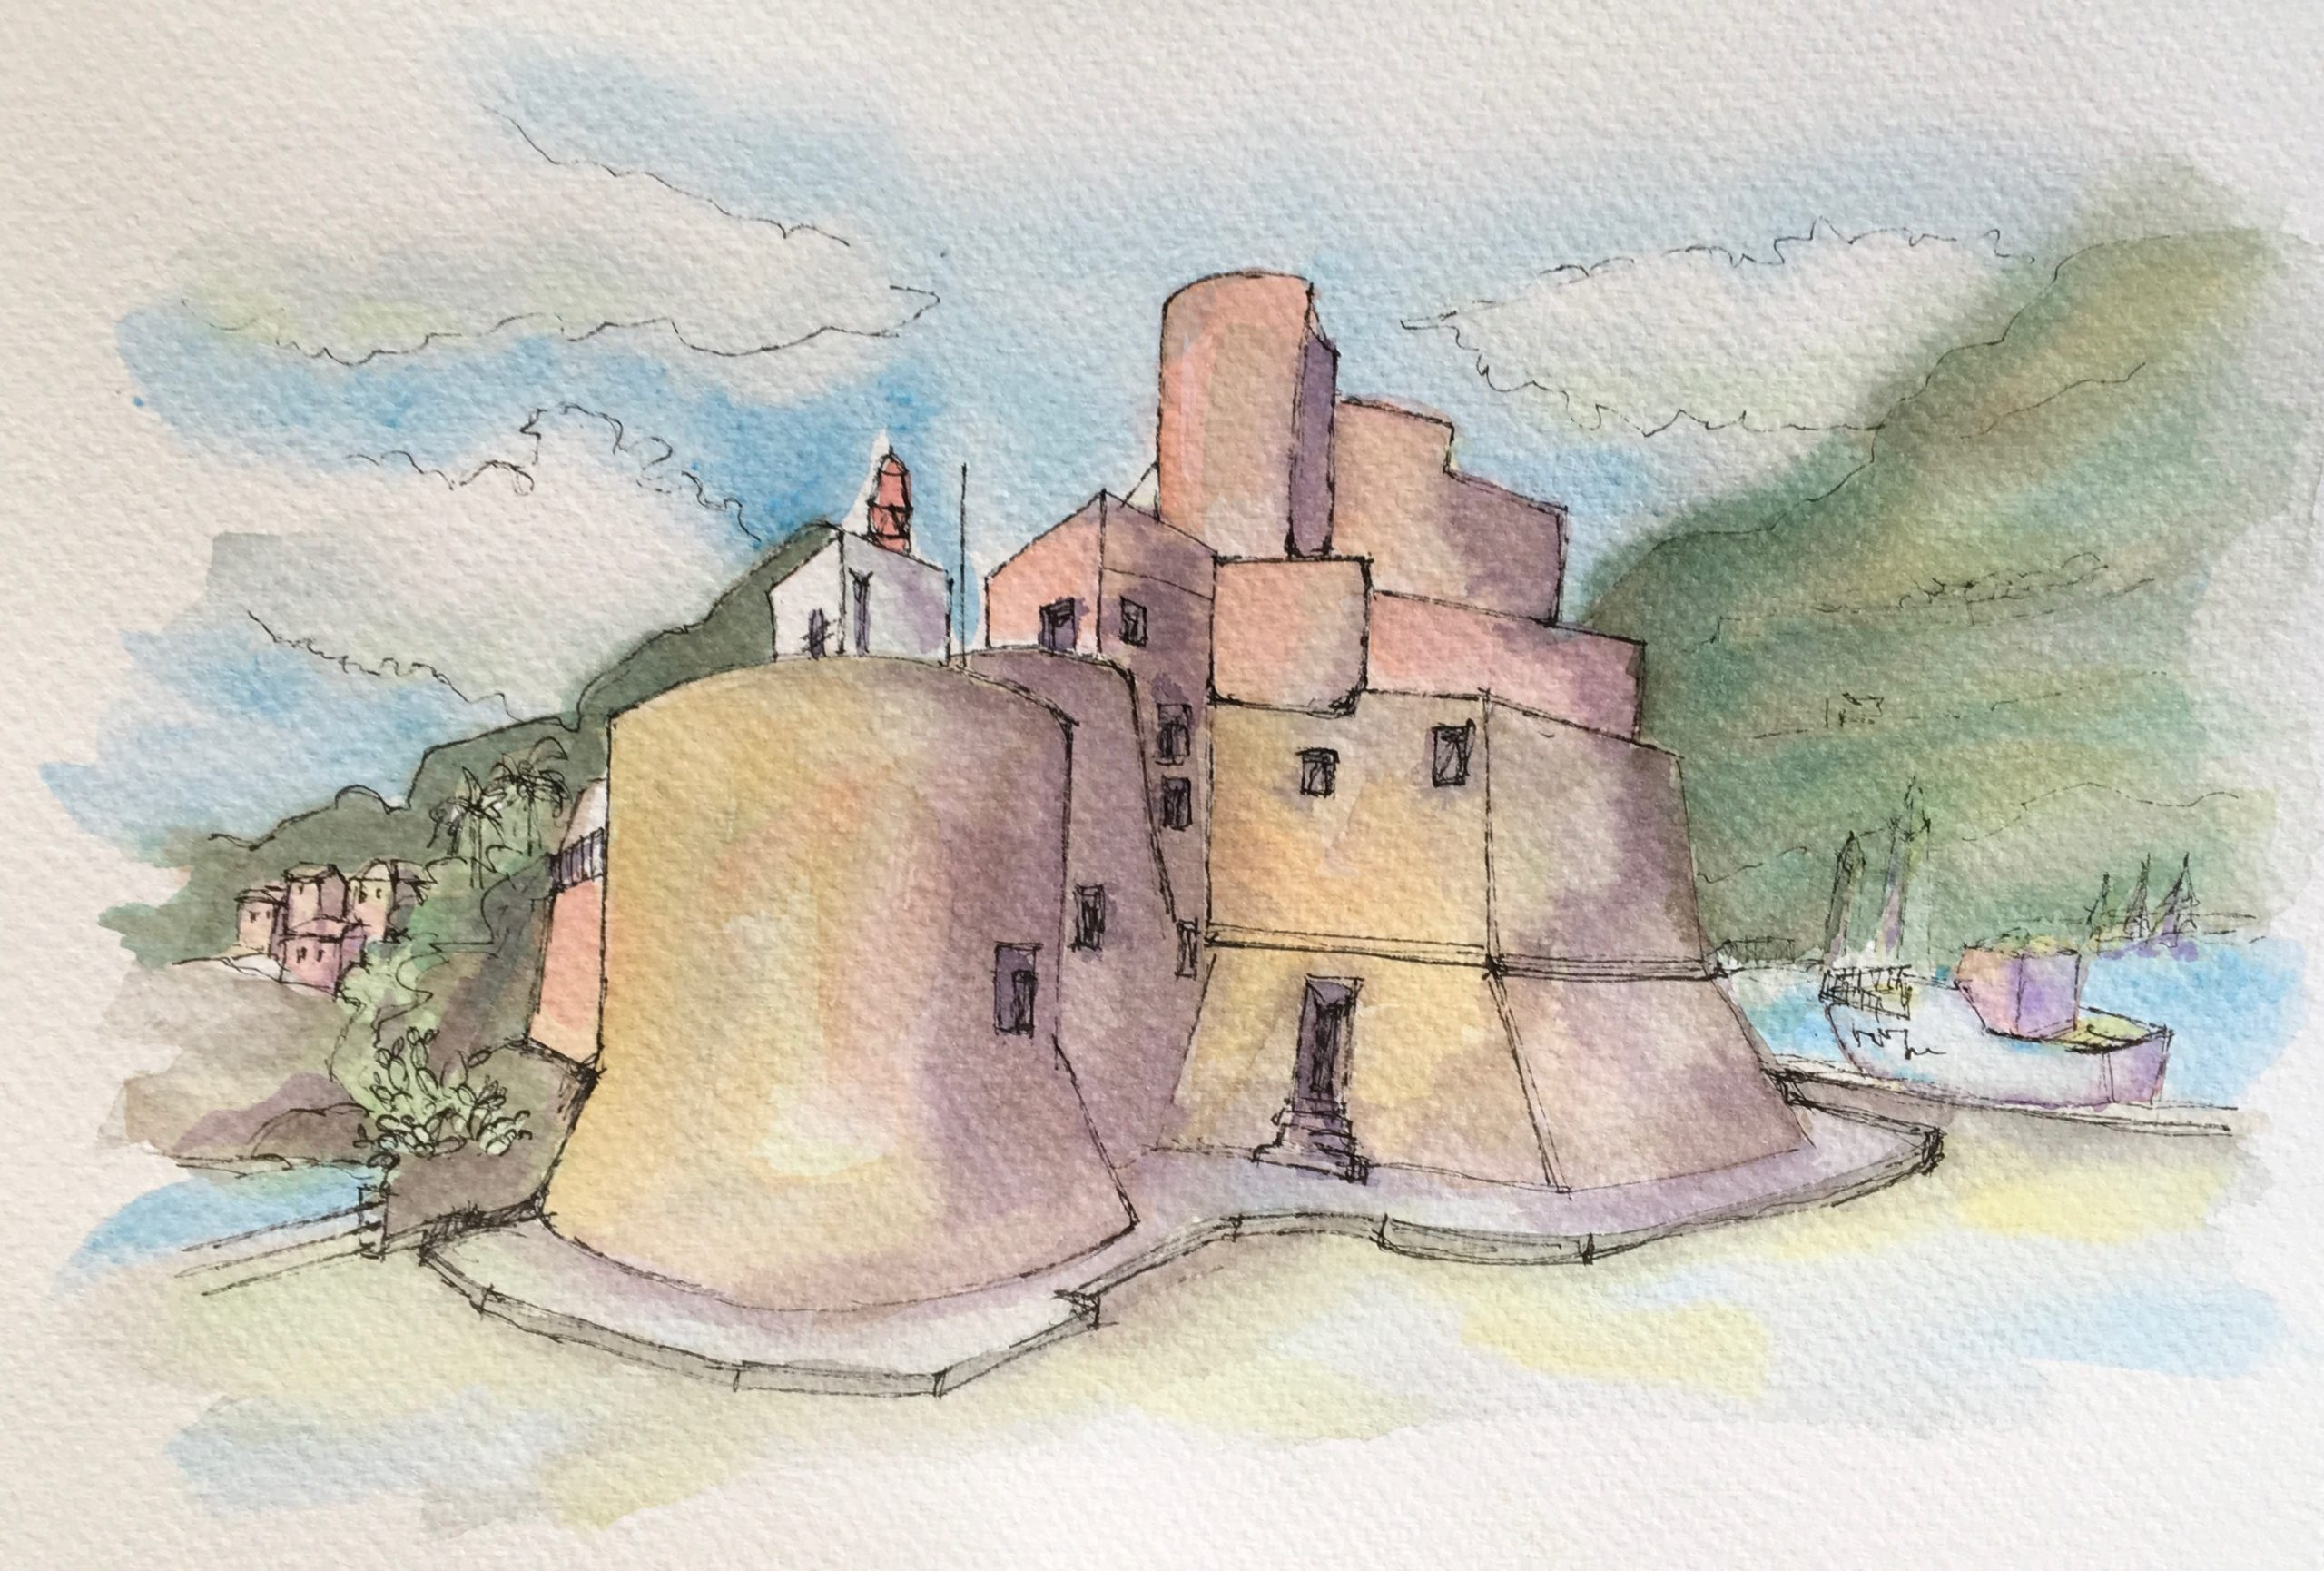 Painting of the Castle of Castellammare del Golfo